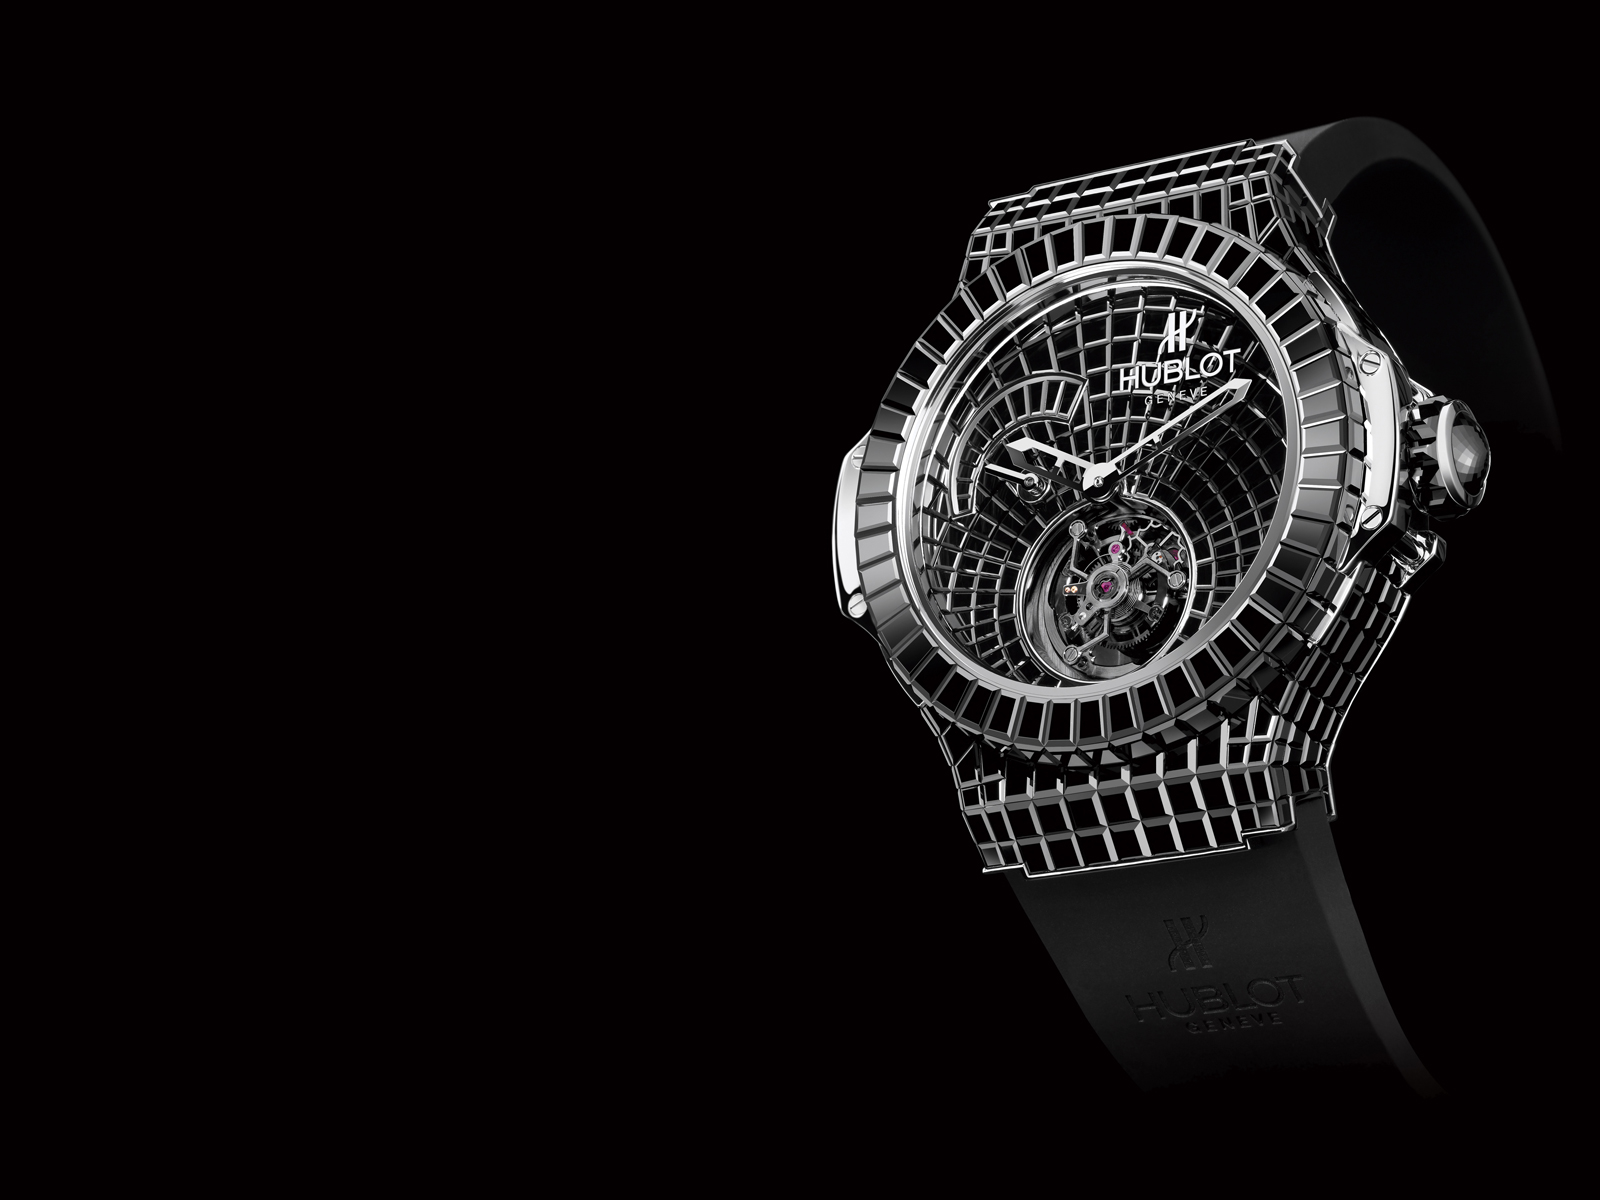 The watch is made of white gold that weighs 18 carats. It does not have any numbers on its face and it has an adjustable leather strap. The case, clasp and crown dial are encrusted with baguette-cut black diamonds, part of the 544 diamonds that weigh 34.5 carats lain into the watch.